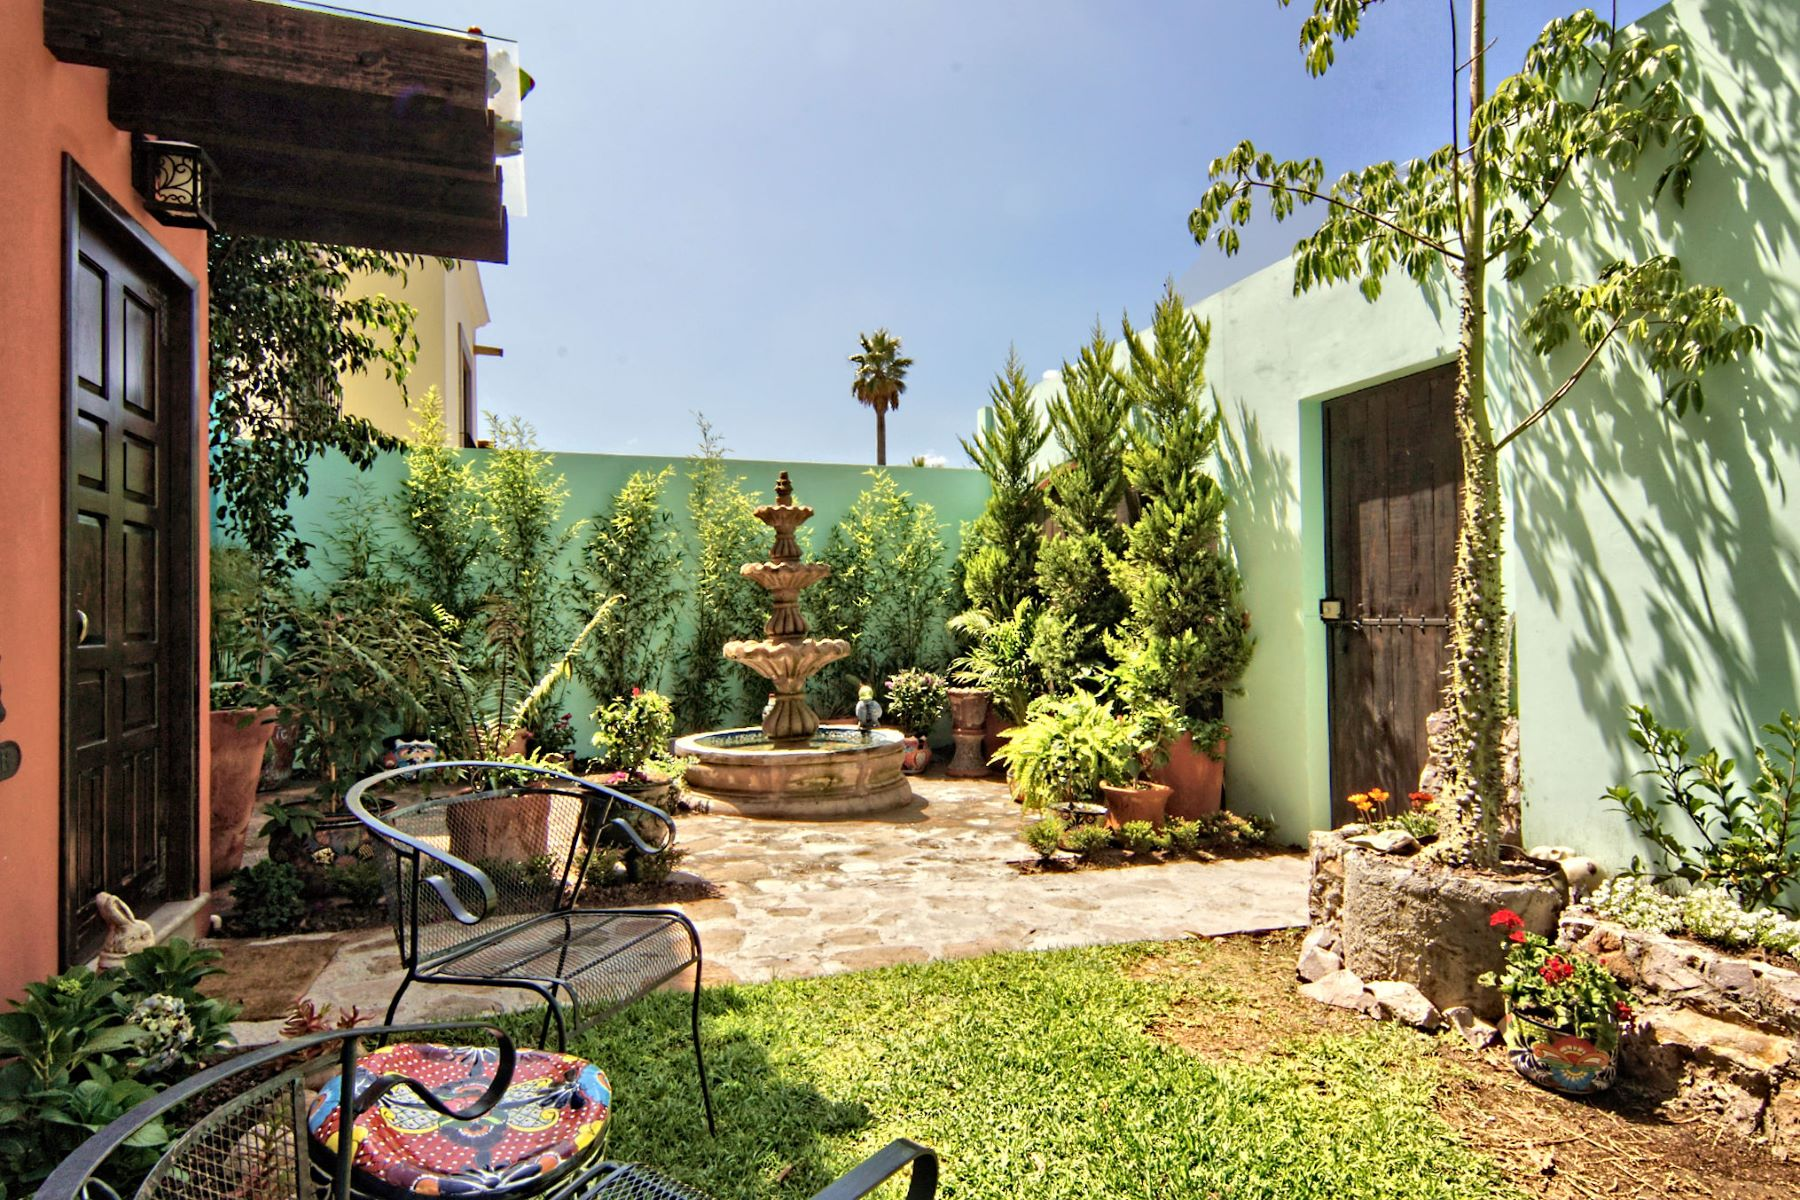 Single Family Home for Sale at PASEO REAL Paseo Real 14 San Miguel De Allende, Guanajuato 37765 Mexico